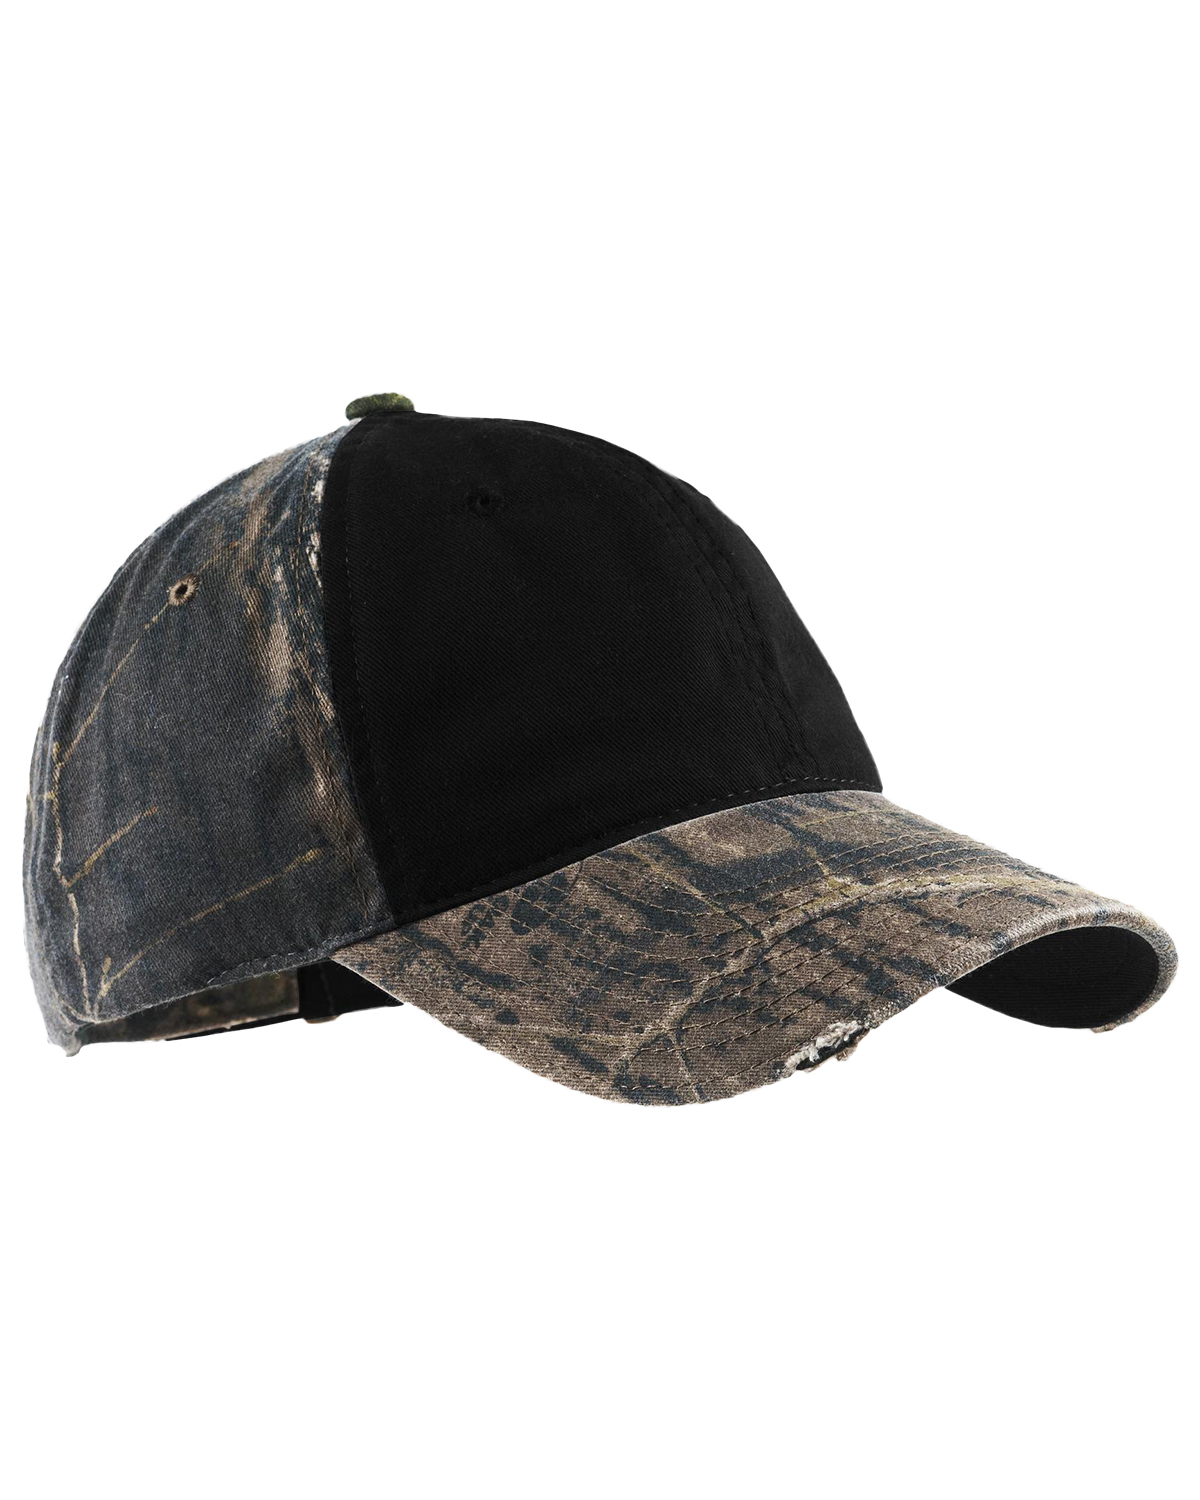 Port Authority C807 Unisex Camo Cap with Contrast Front Panel at GotApparel